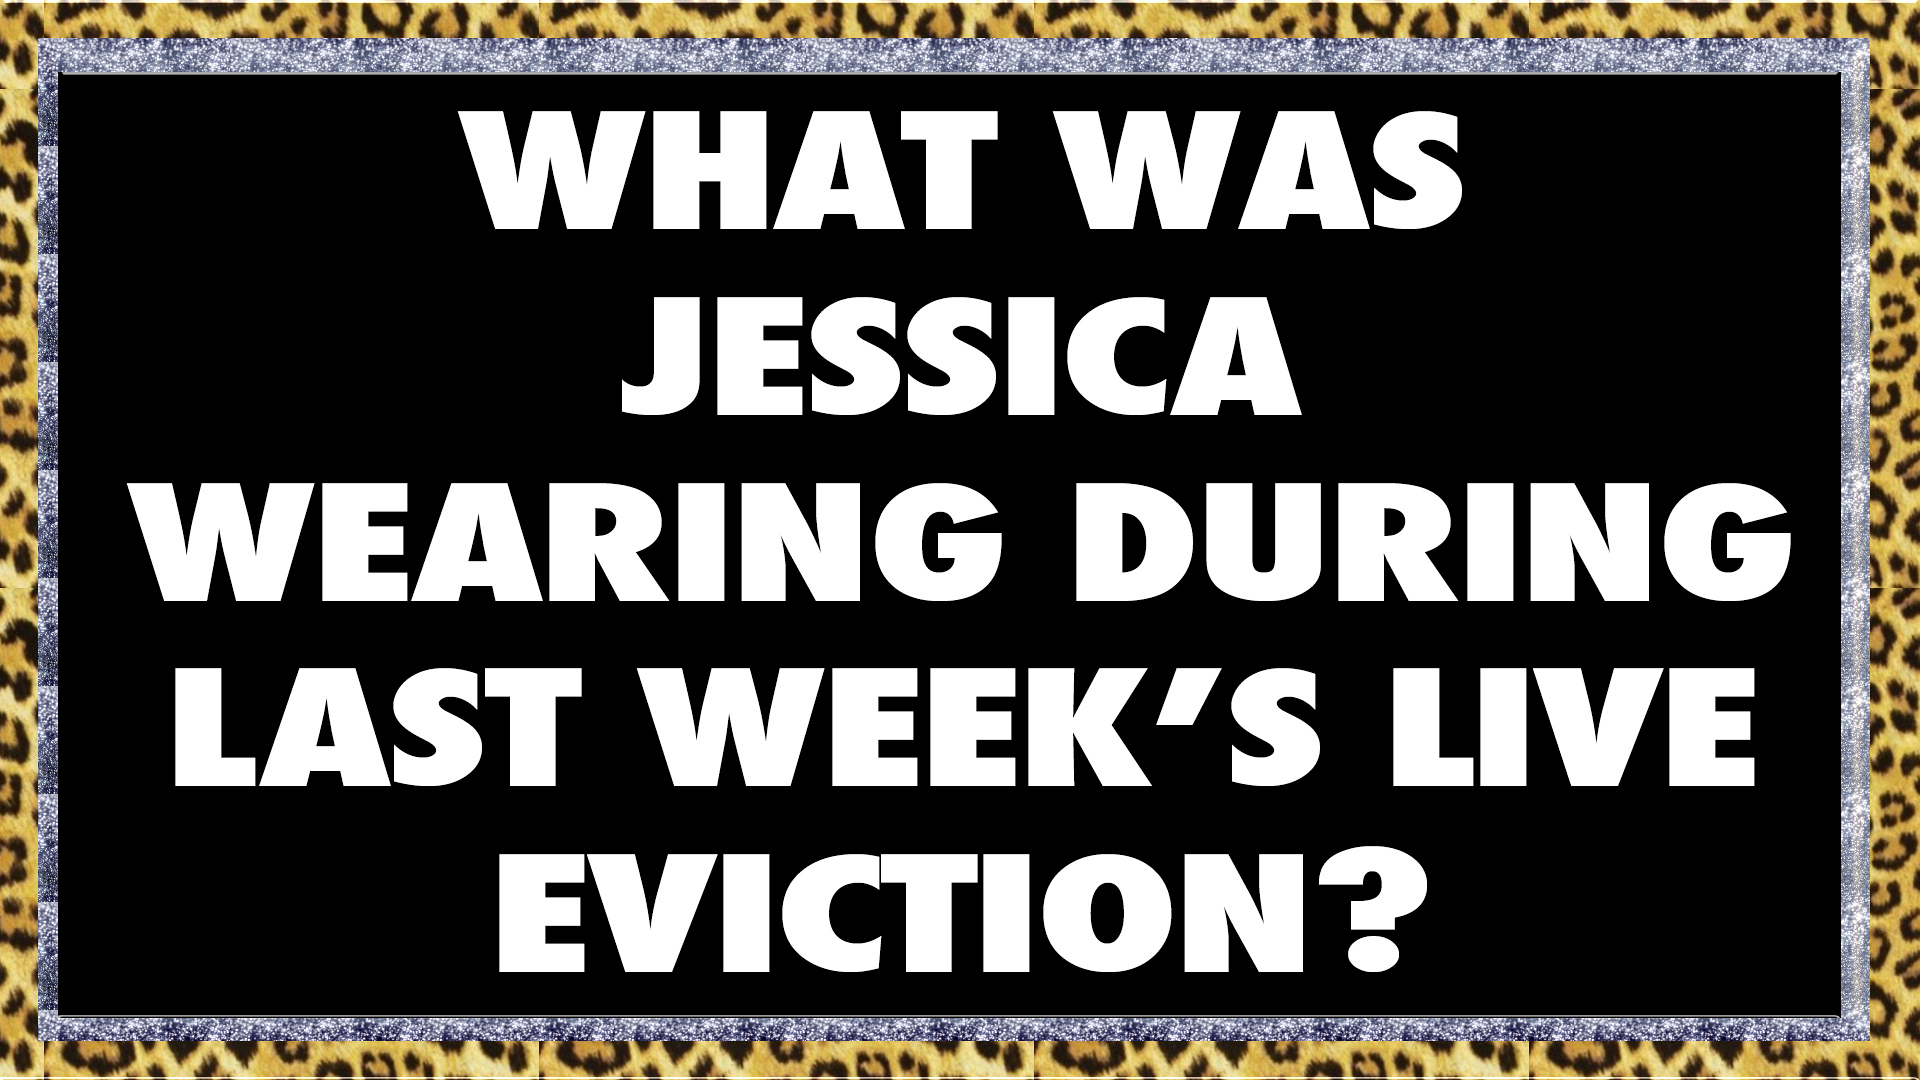 What was Jessica wearing during last week's Live Eviction?